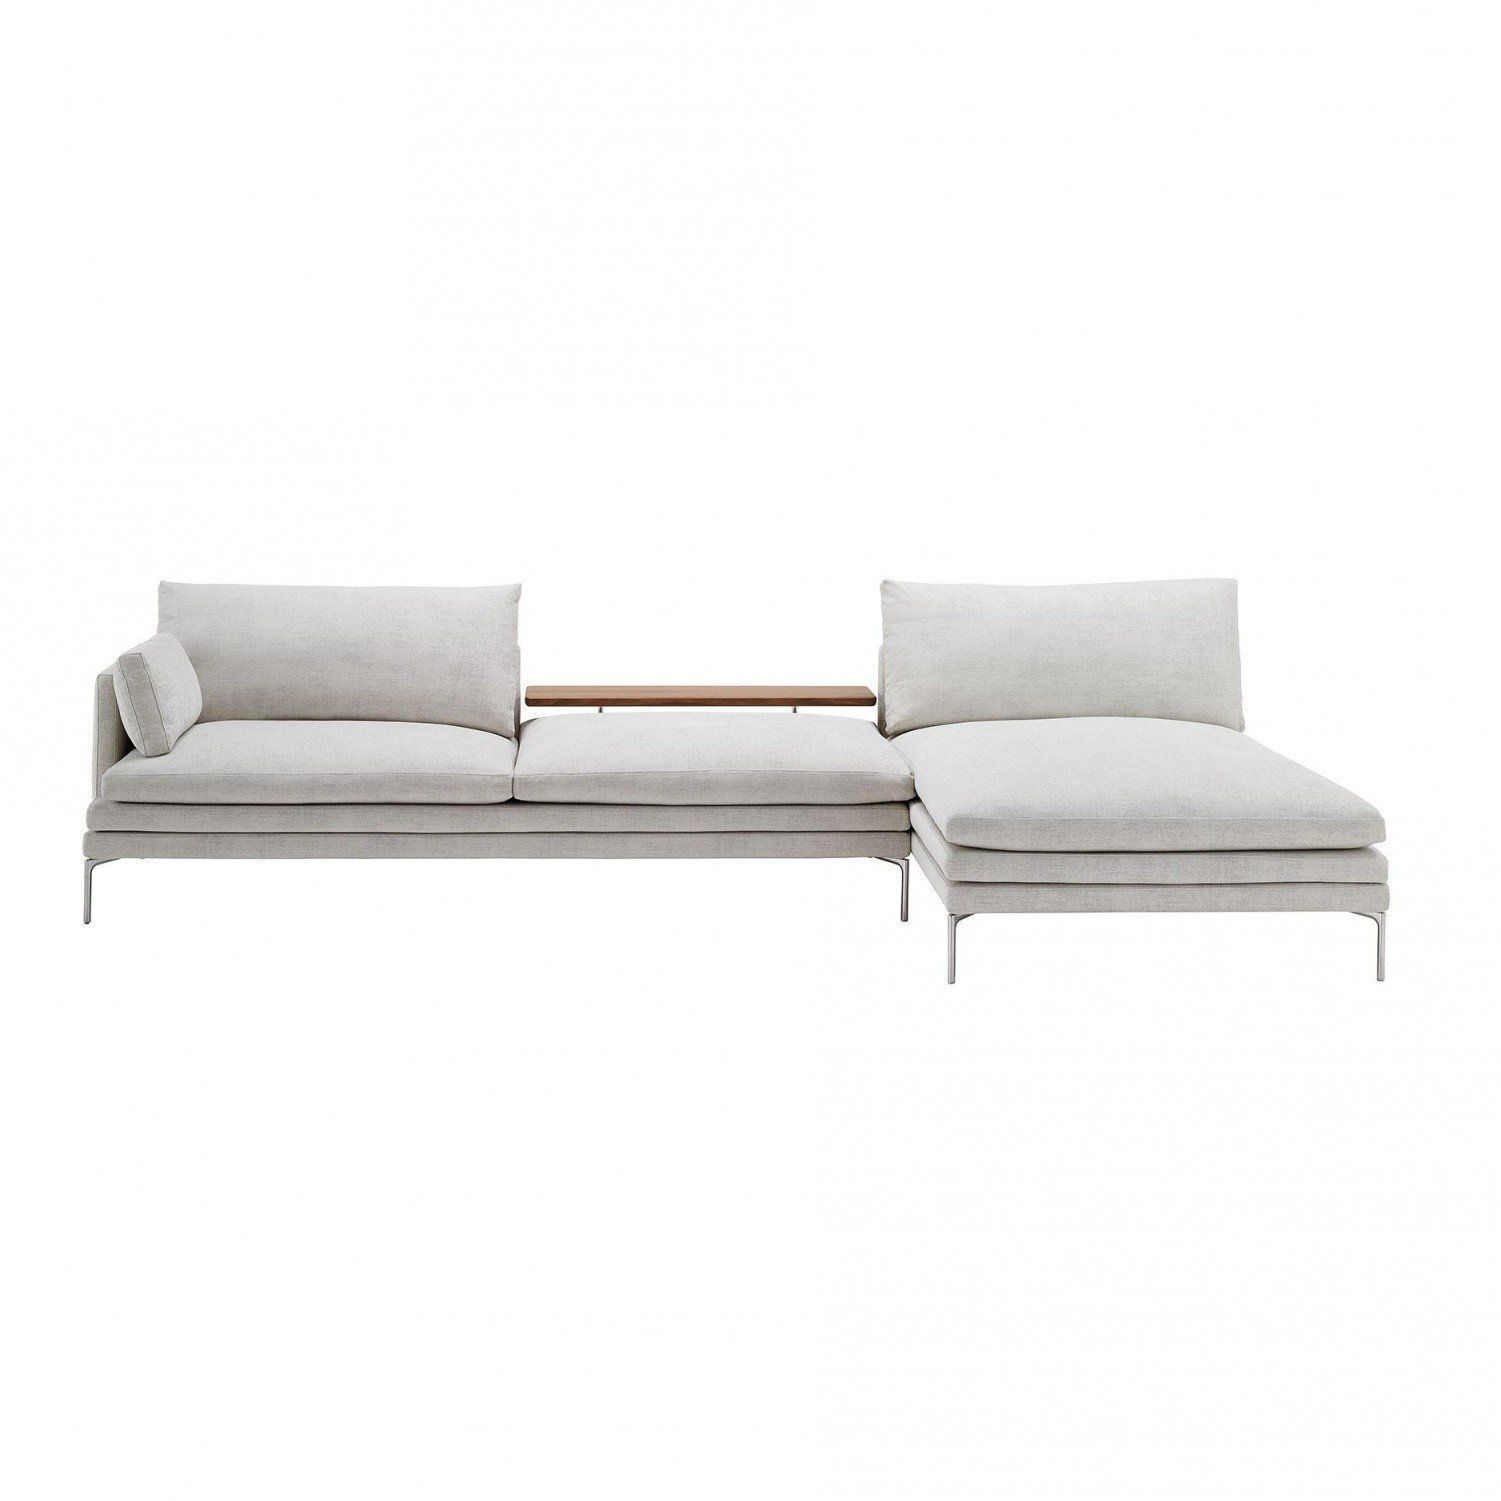 Superbe Zanotta   William Sofa With Chaise Longue 328x160cm   Light Grey/fabric  Tatto 26804/